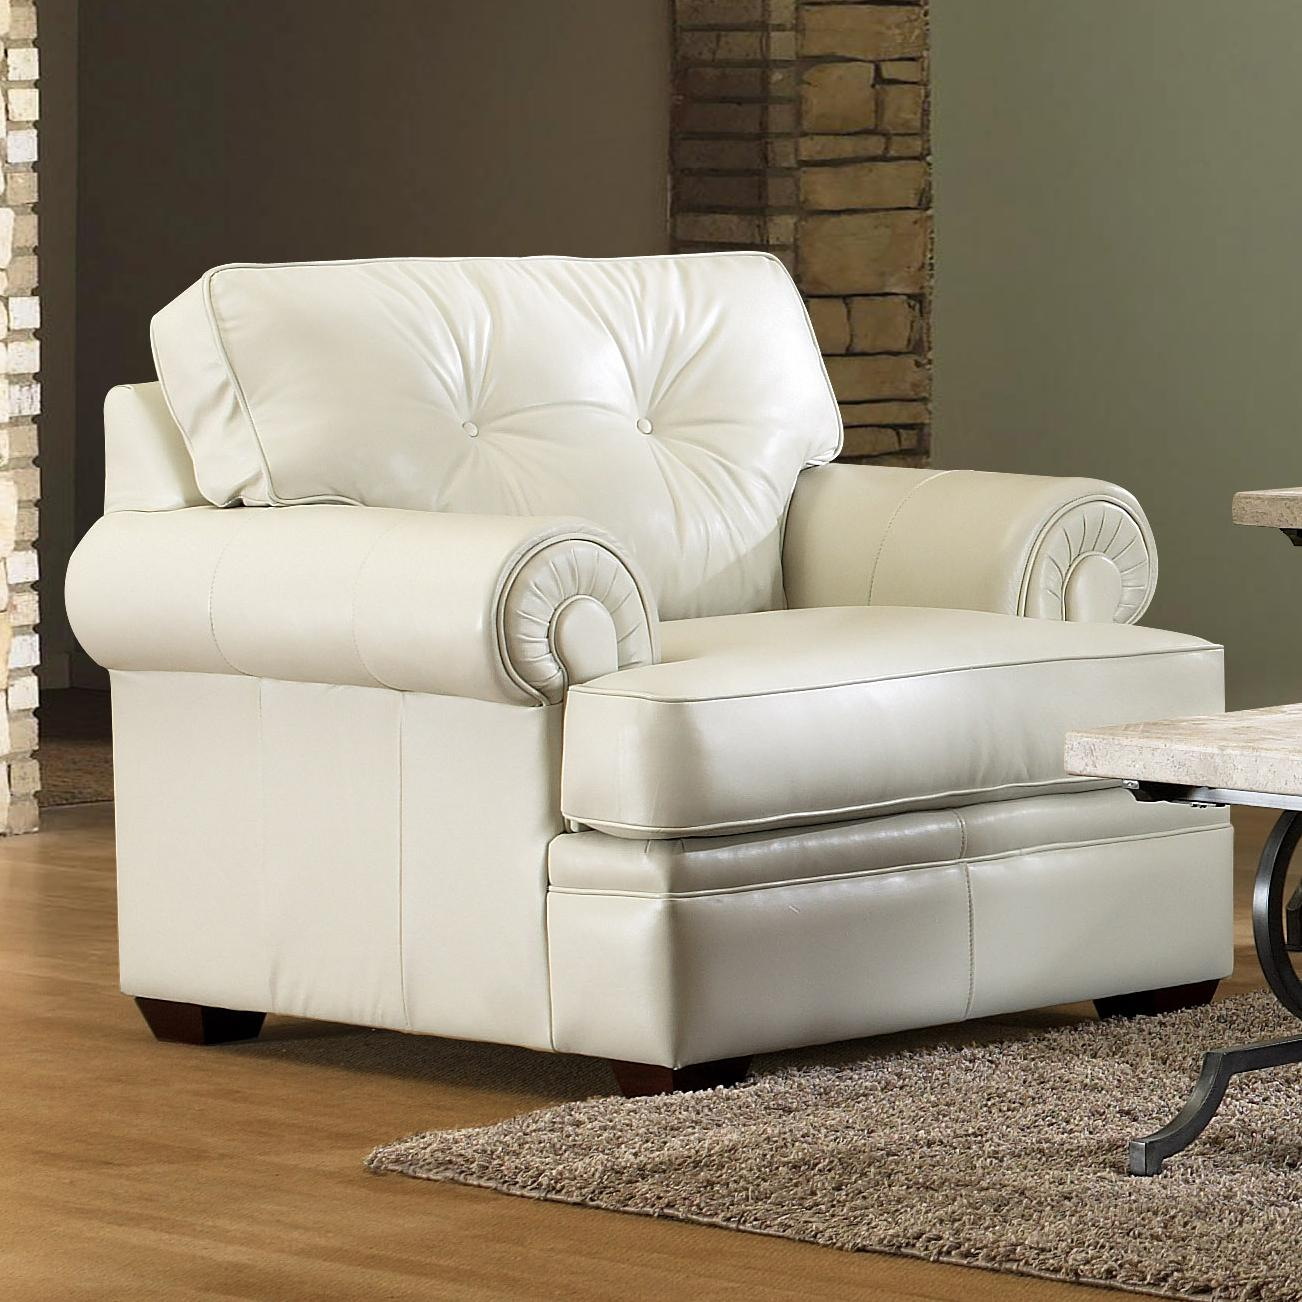 Klaussner Semora Transitional Chair With Button Tufting And Panel Arms Value City Furniture